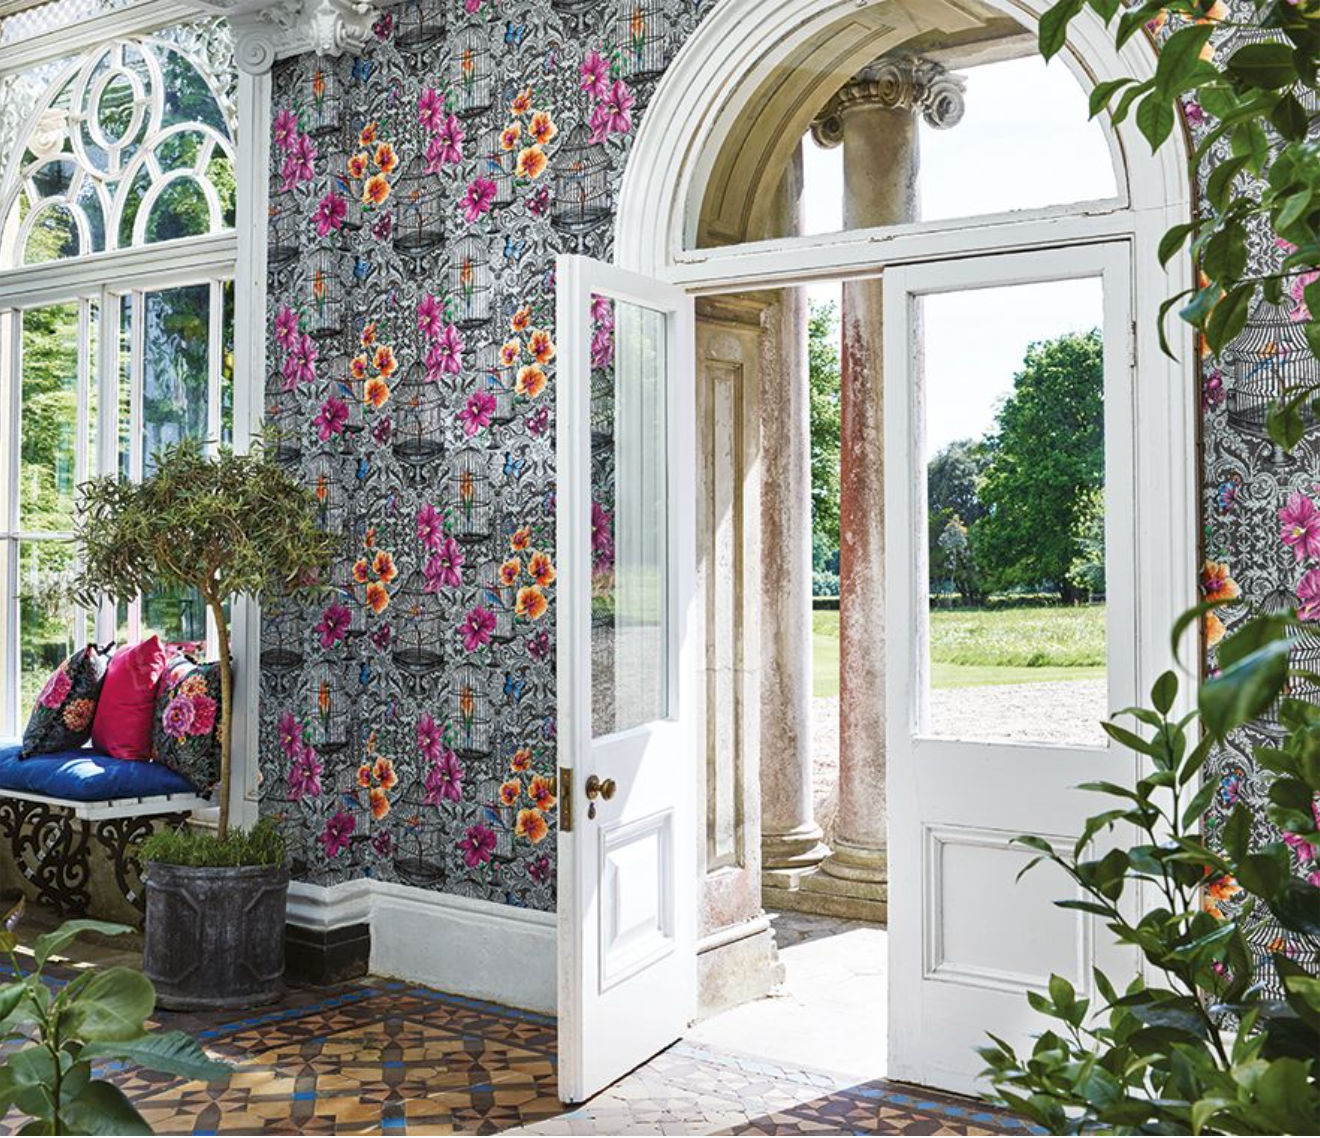 The 'Orangery' wallpaper from the Autumn 2017 'Belvoir' collection by Matthew Williamson for Osborne & Little